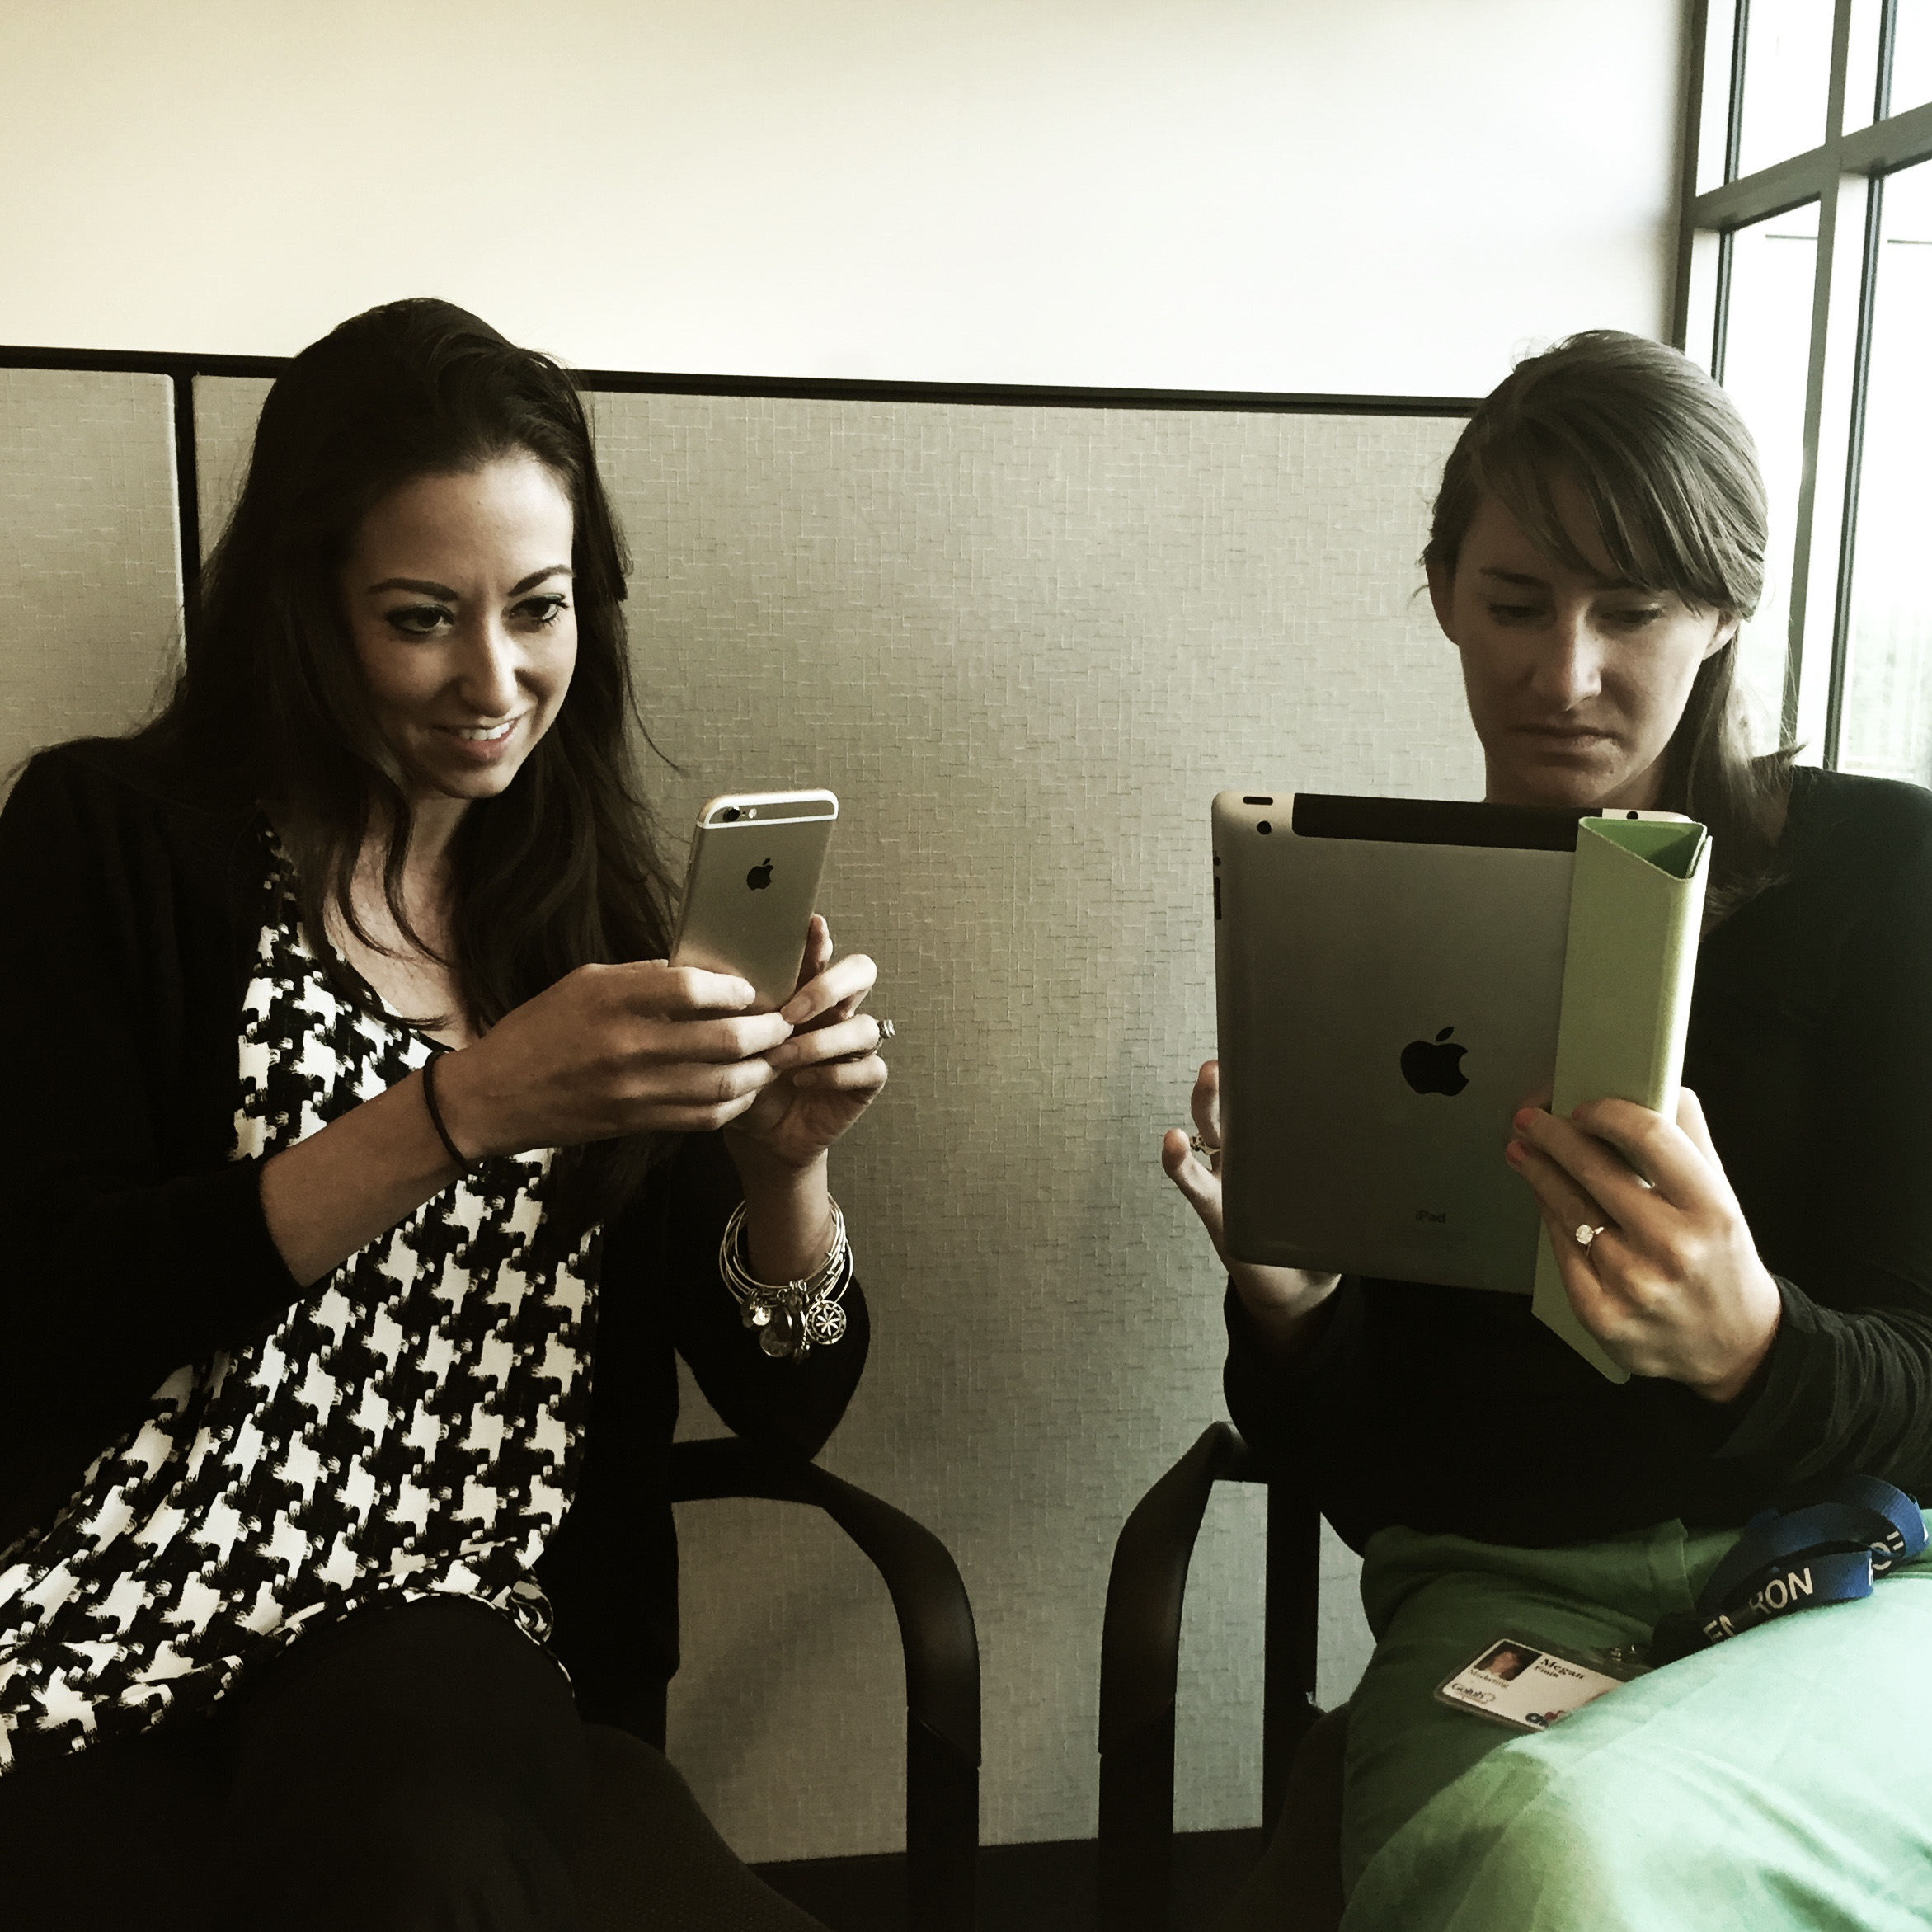 Two SparkShoppe marketing employees browsing online. Woman on the left using an Apple iPhone, woman on the right using an Apple iPad.